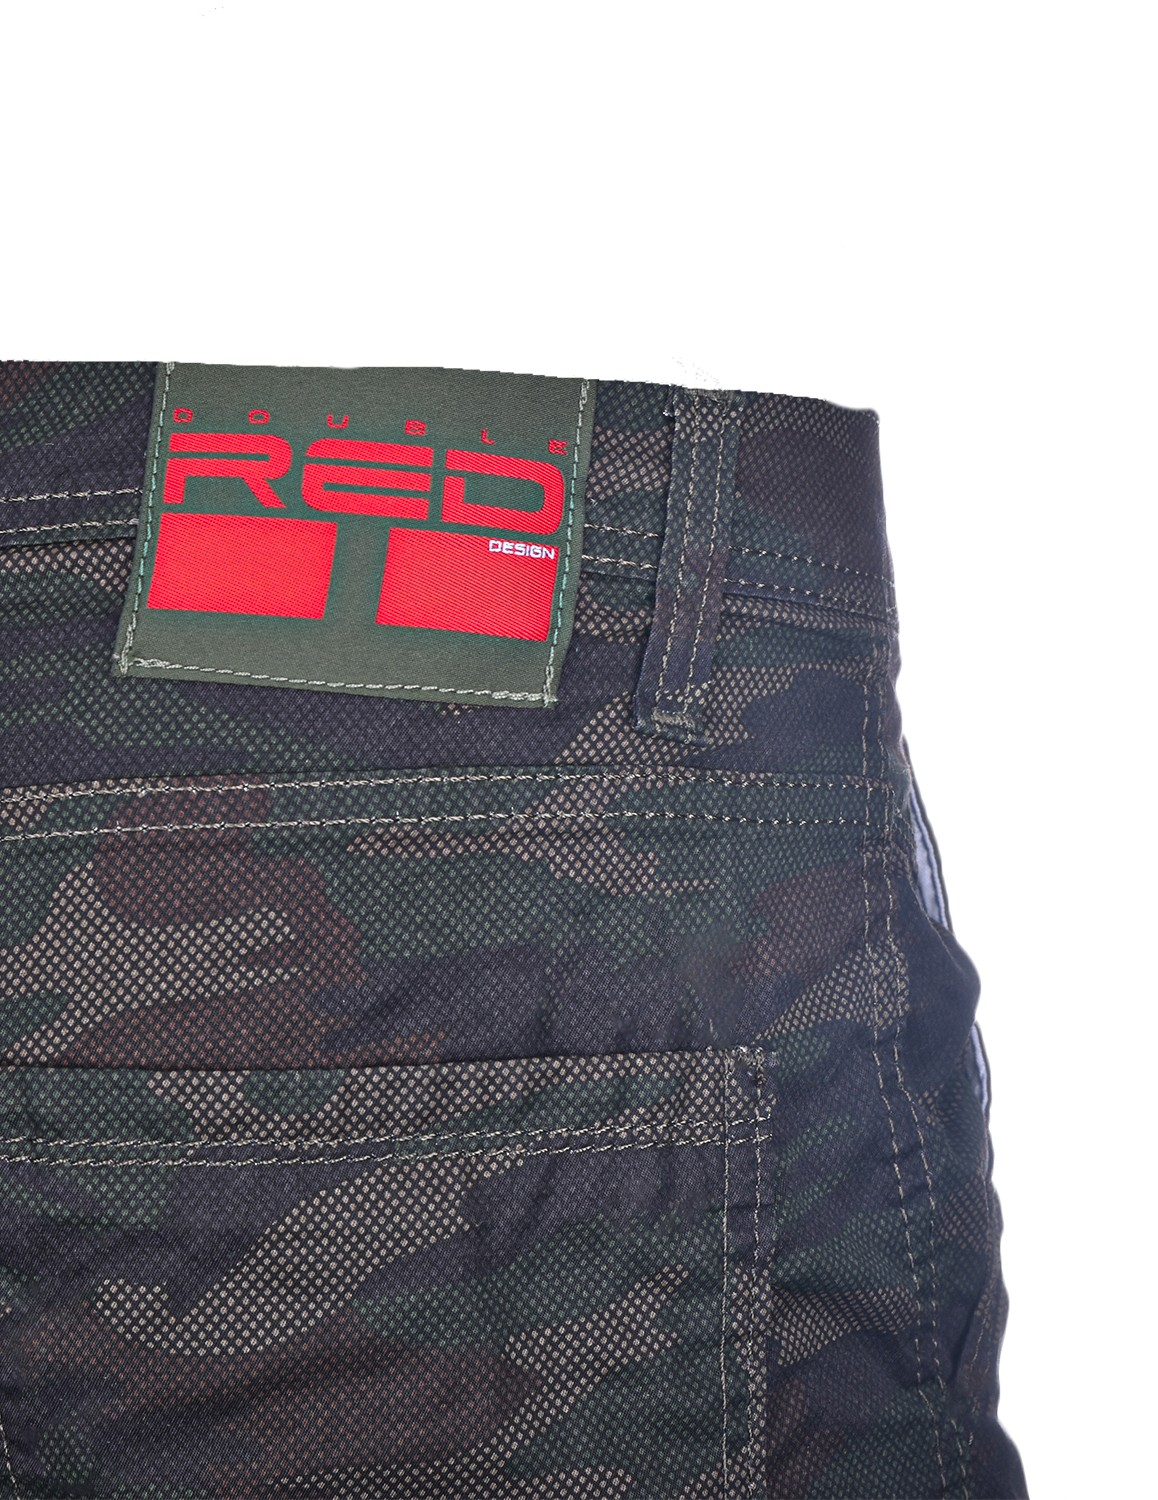 Soldier Camo Green Pants